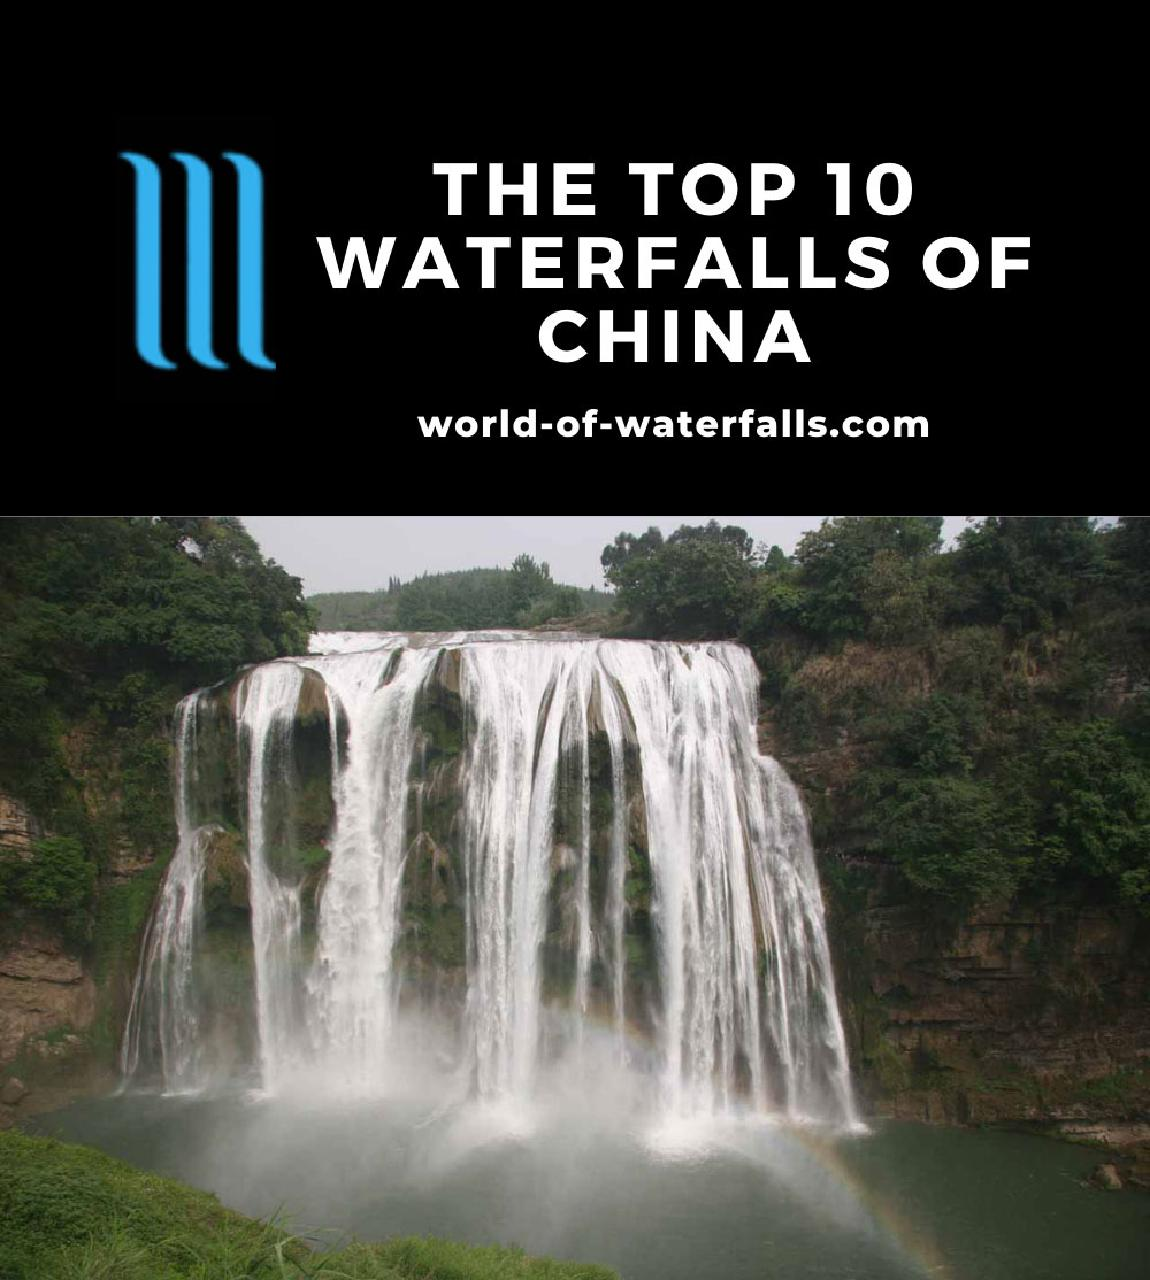 The Top 10 Waterfalls of China